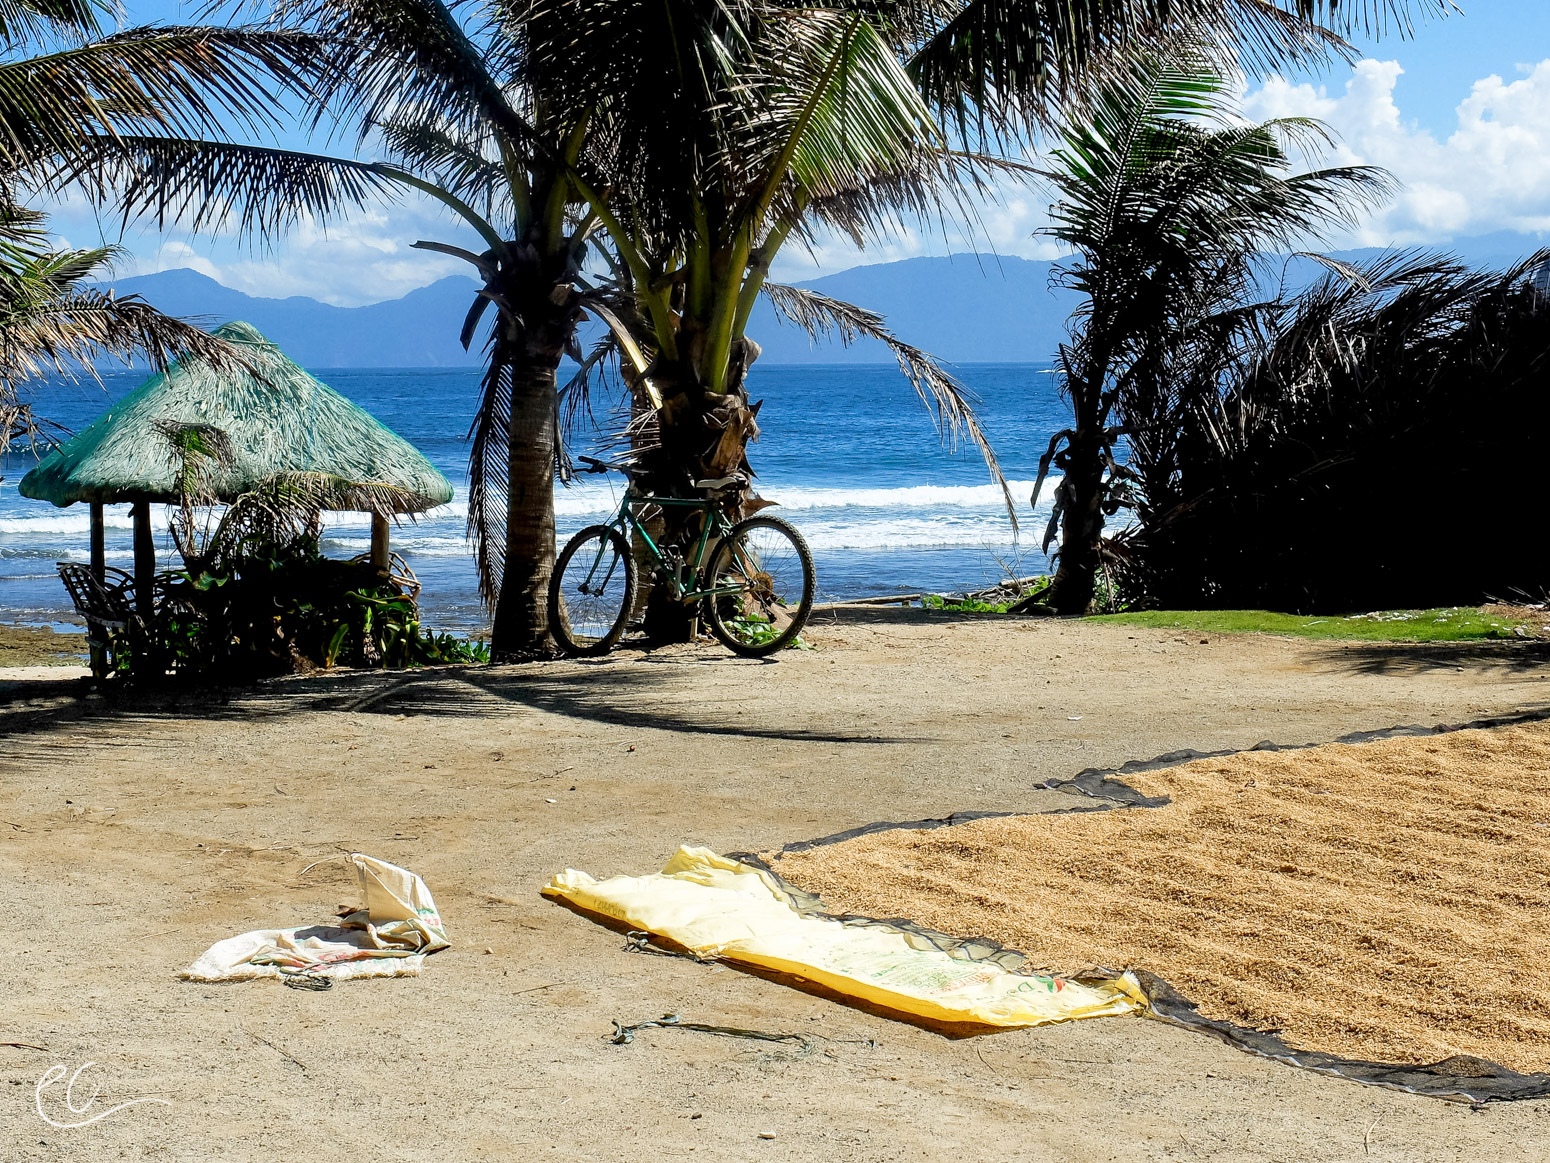 Rice drying on the beach after the storm.